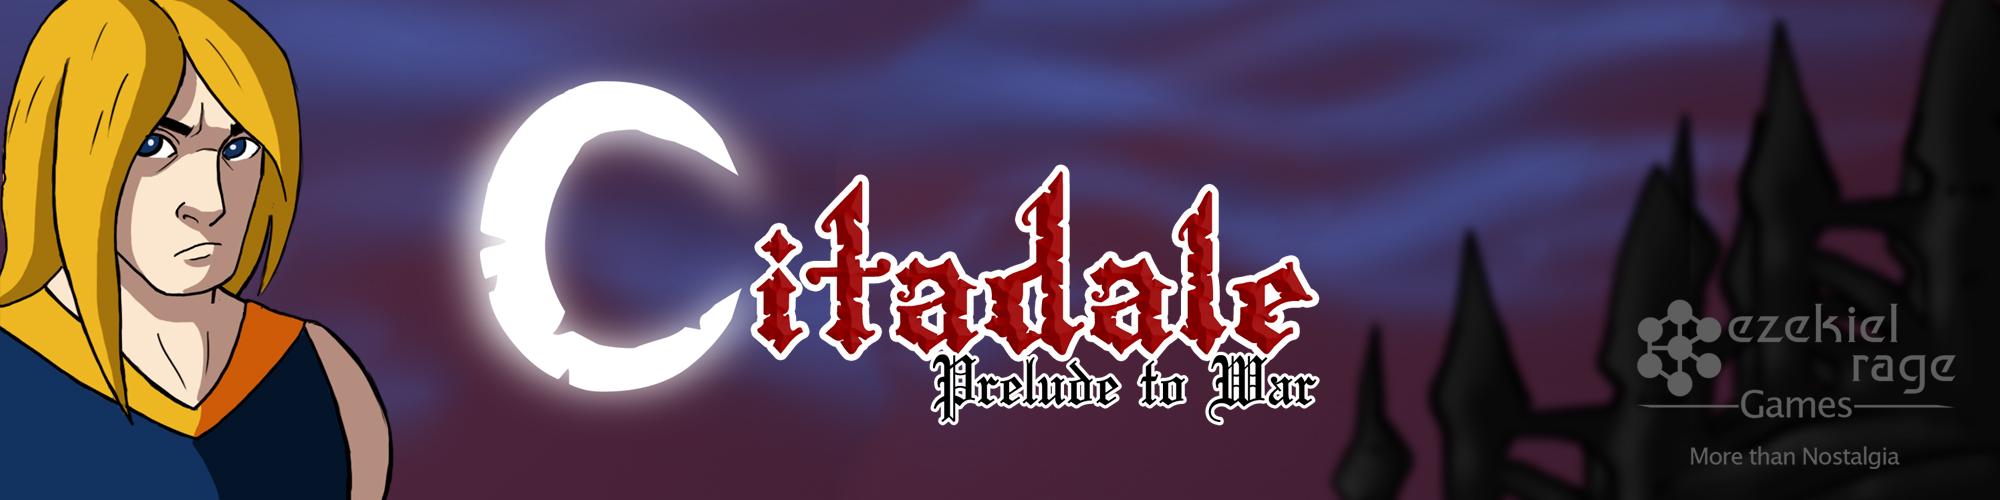 Citadale - Prelude to War